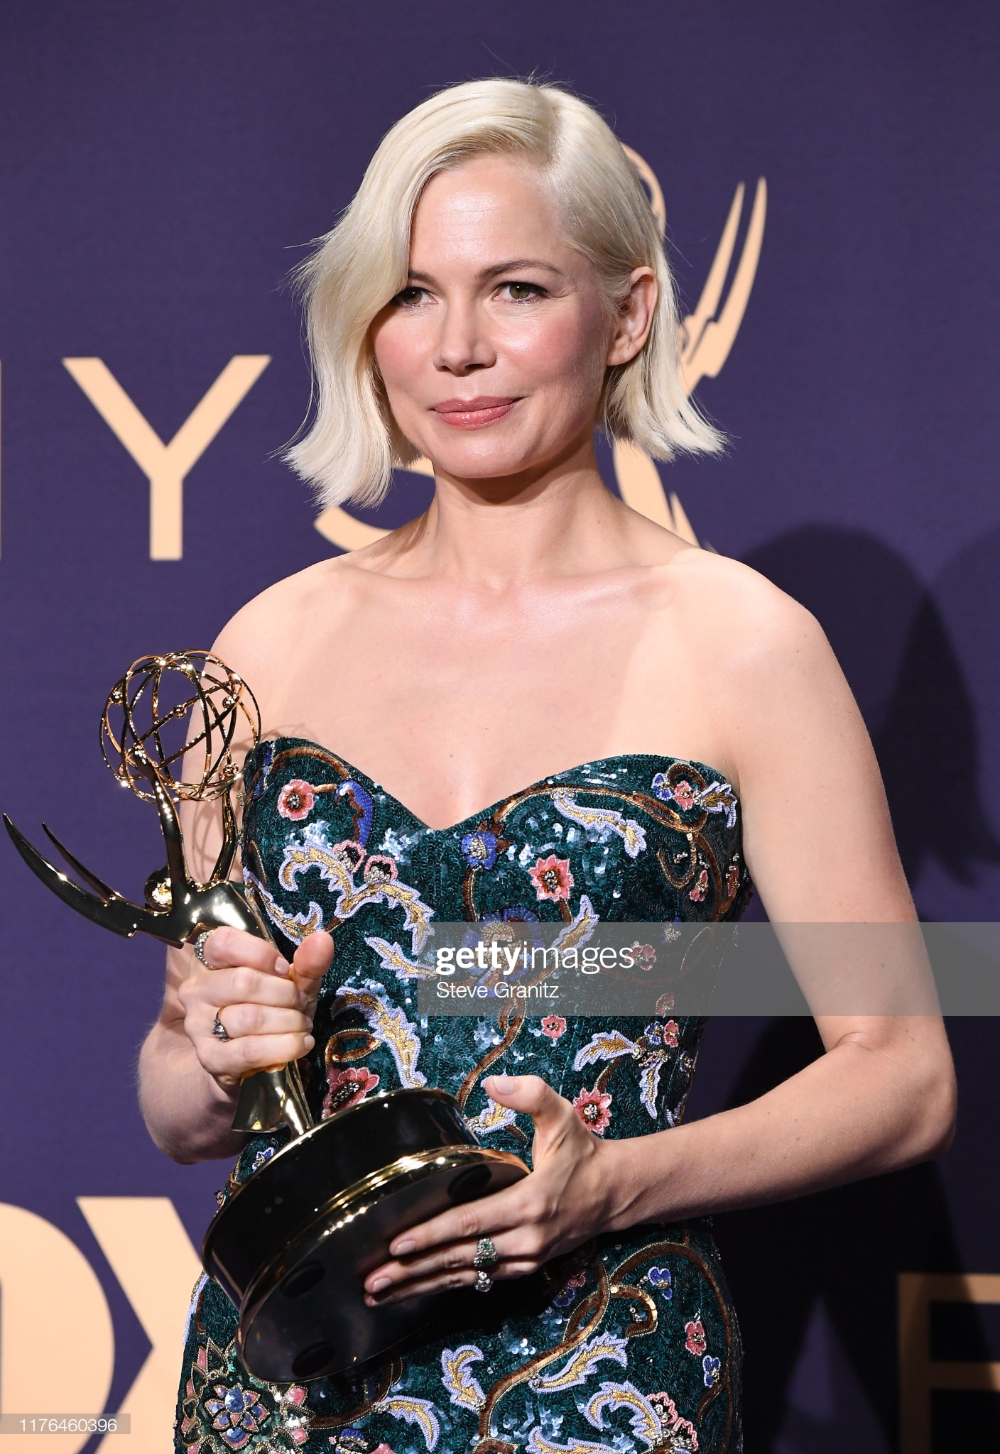 Michelle Williams Poses In The Press Room During The 71st Emmy Awards At Microsoft Theater On September 22 2019 In Los Ange Michelle Williams Poses Actresses